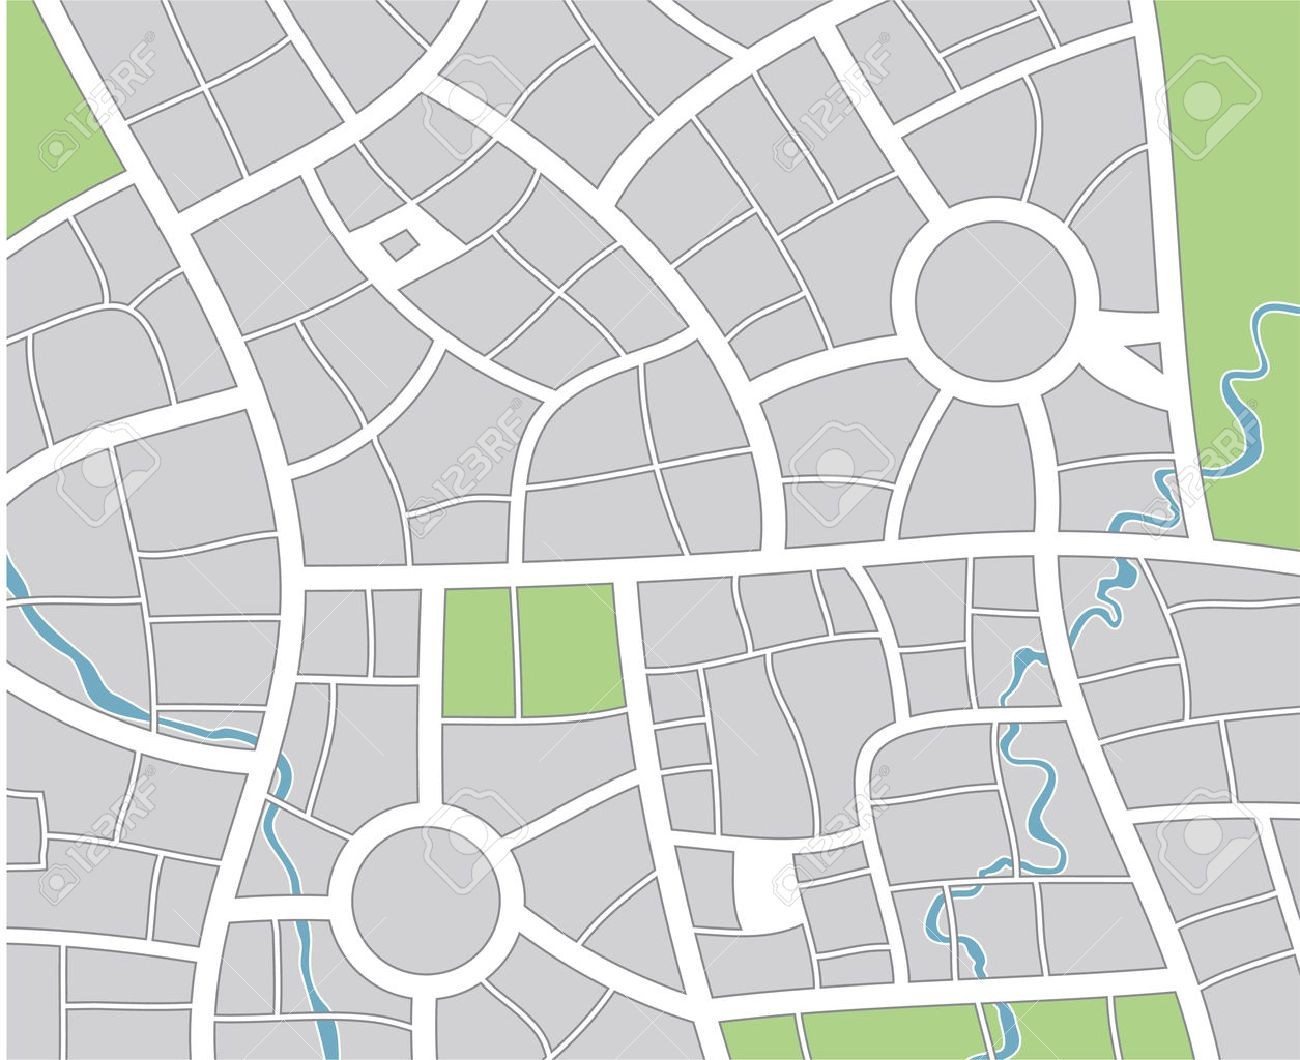 51 Thorough Blank Street Map Template Throughout Blank City Map Template